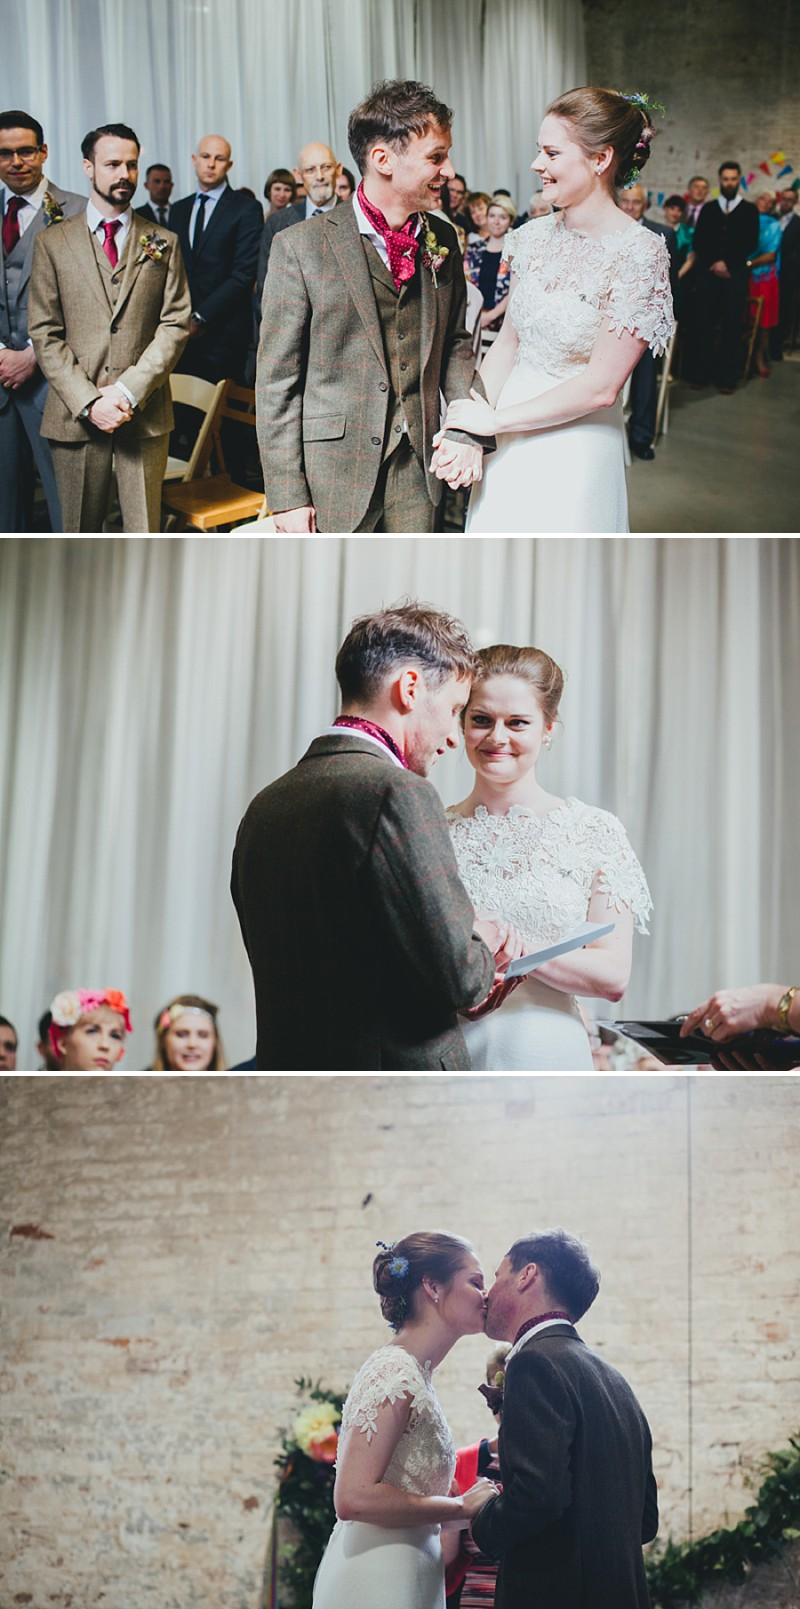 An alternative rock n roll wedding at Calke Abbey in Derbyshire with a bride in a Kula Tsurdiu gown and the most beautiful flowers by Honeysuckle and Castle_0208